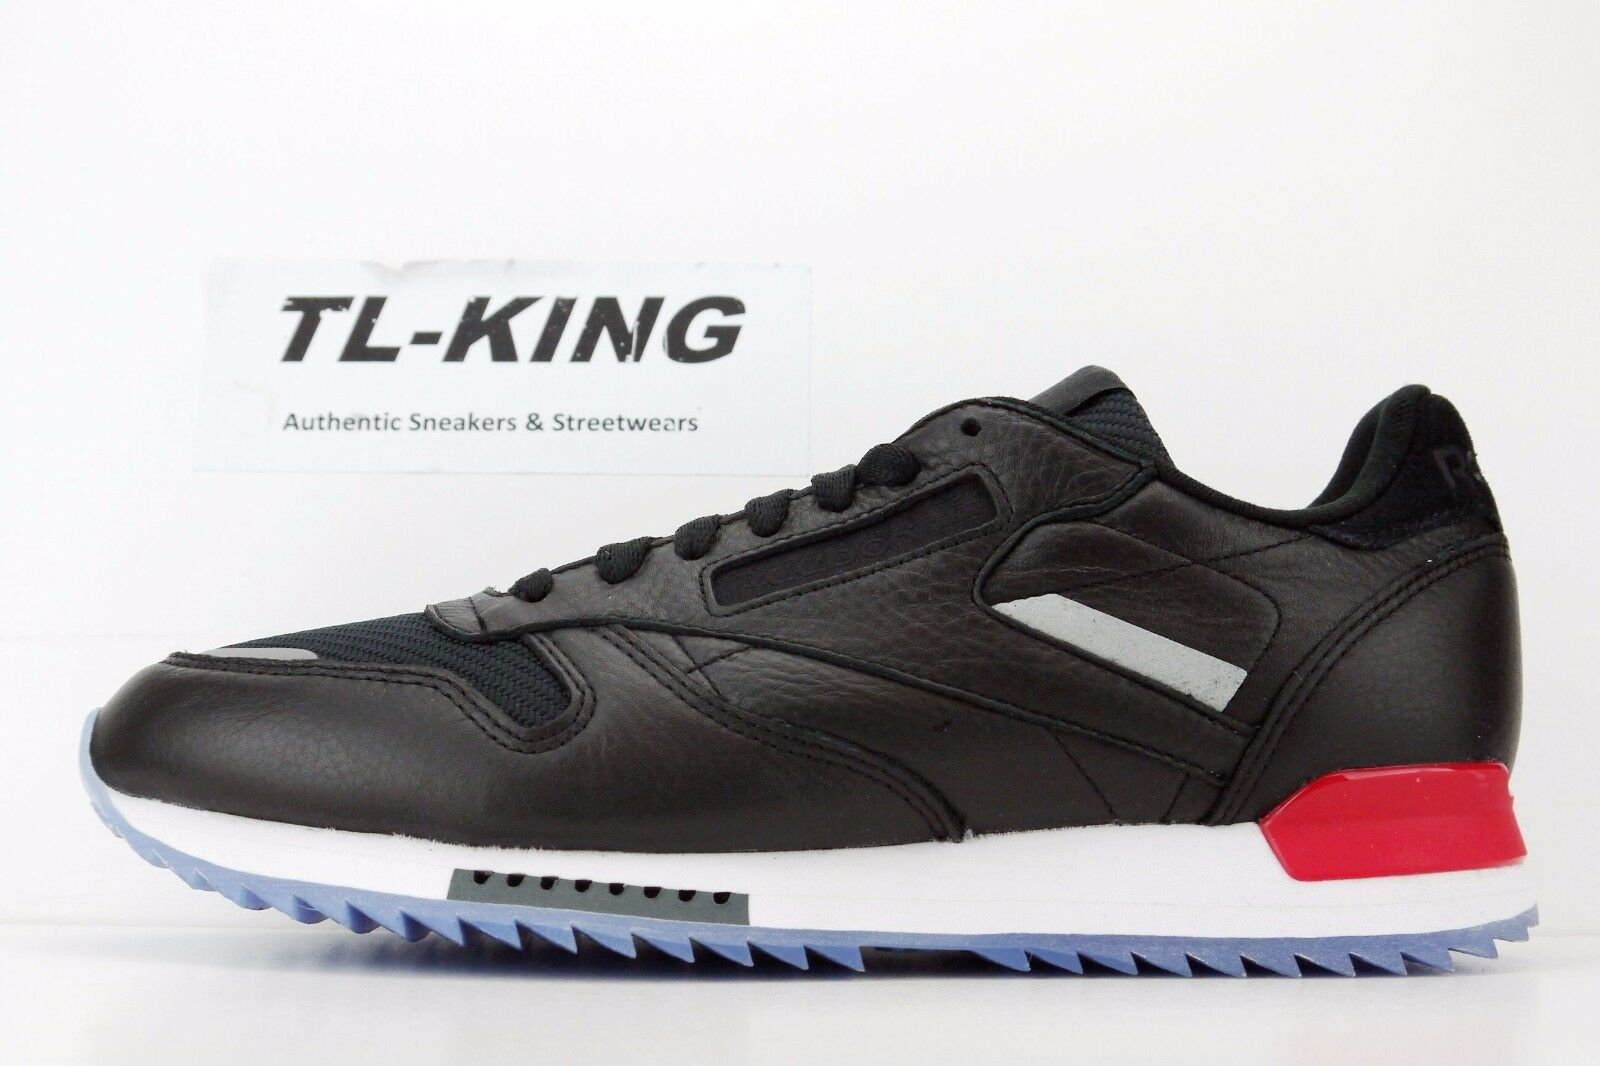 Reebok CL Classic Leather Ripple Low BP Black White Red Dust Ice BS5218 Ii